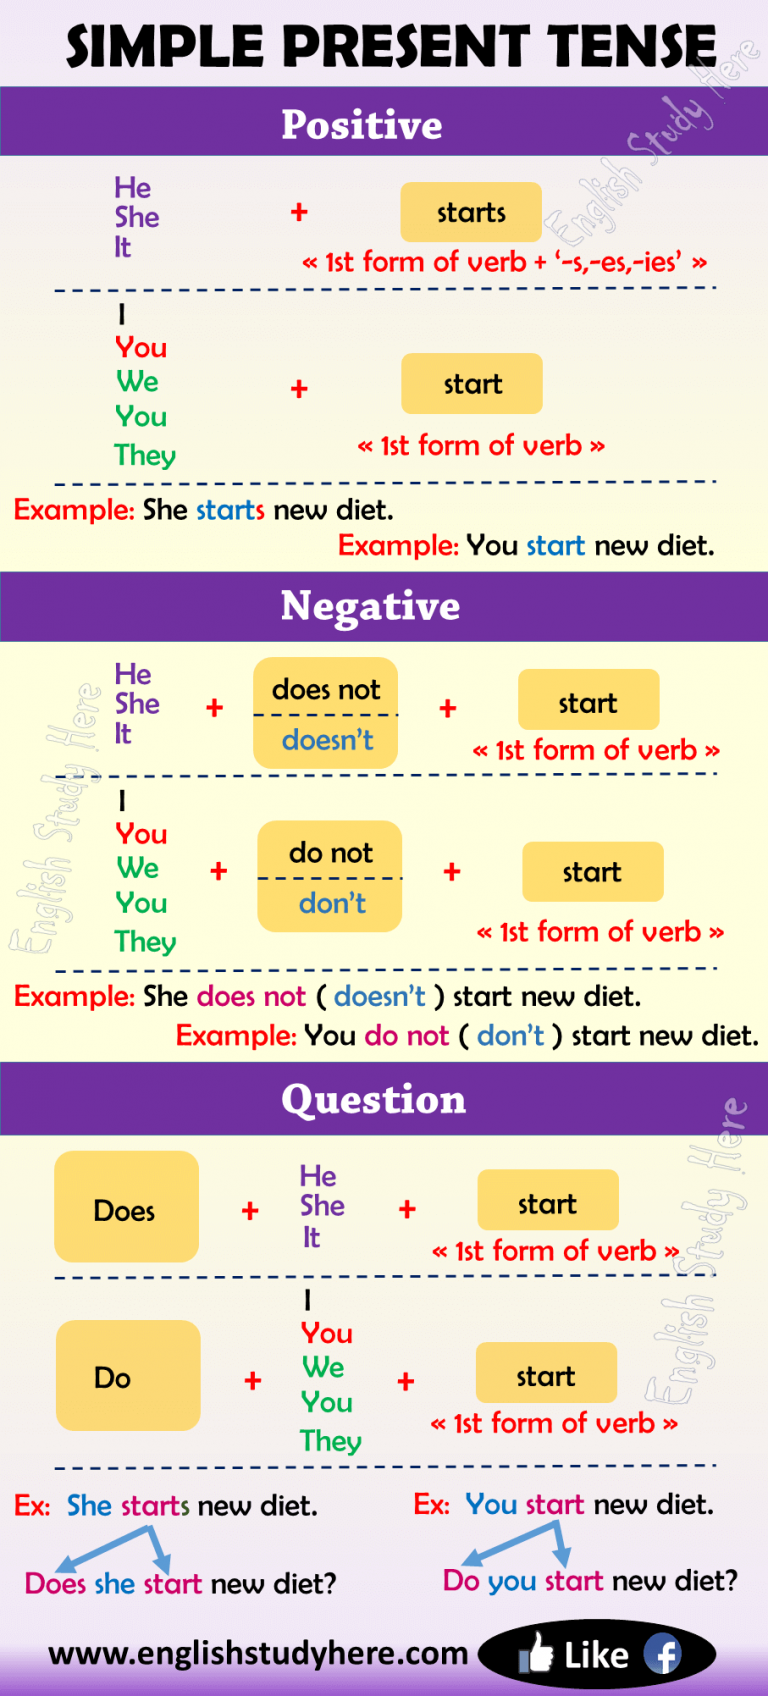 Simple Present Tense In English English Study Here Simple Present Tense Learn English Grammar Easy English Grammar